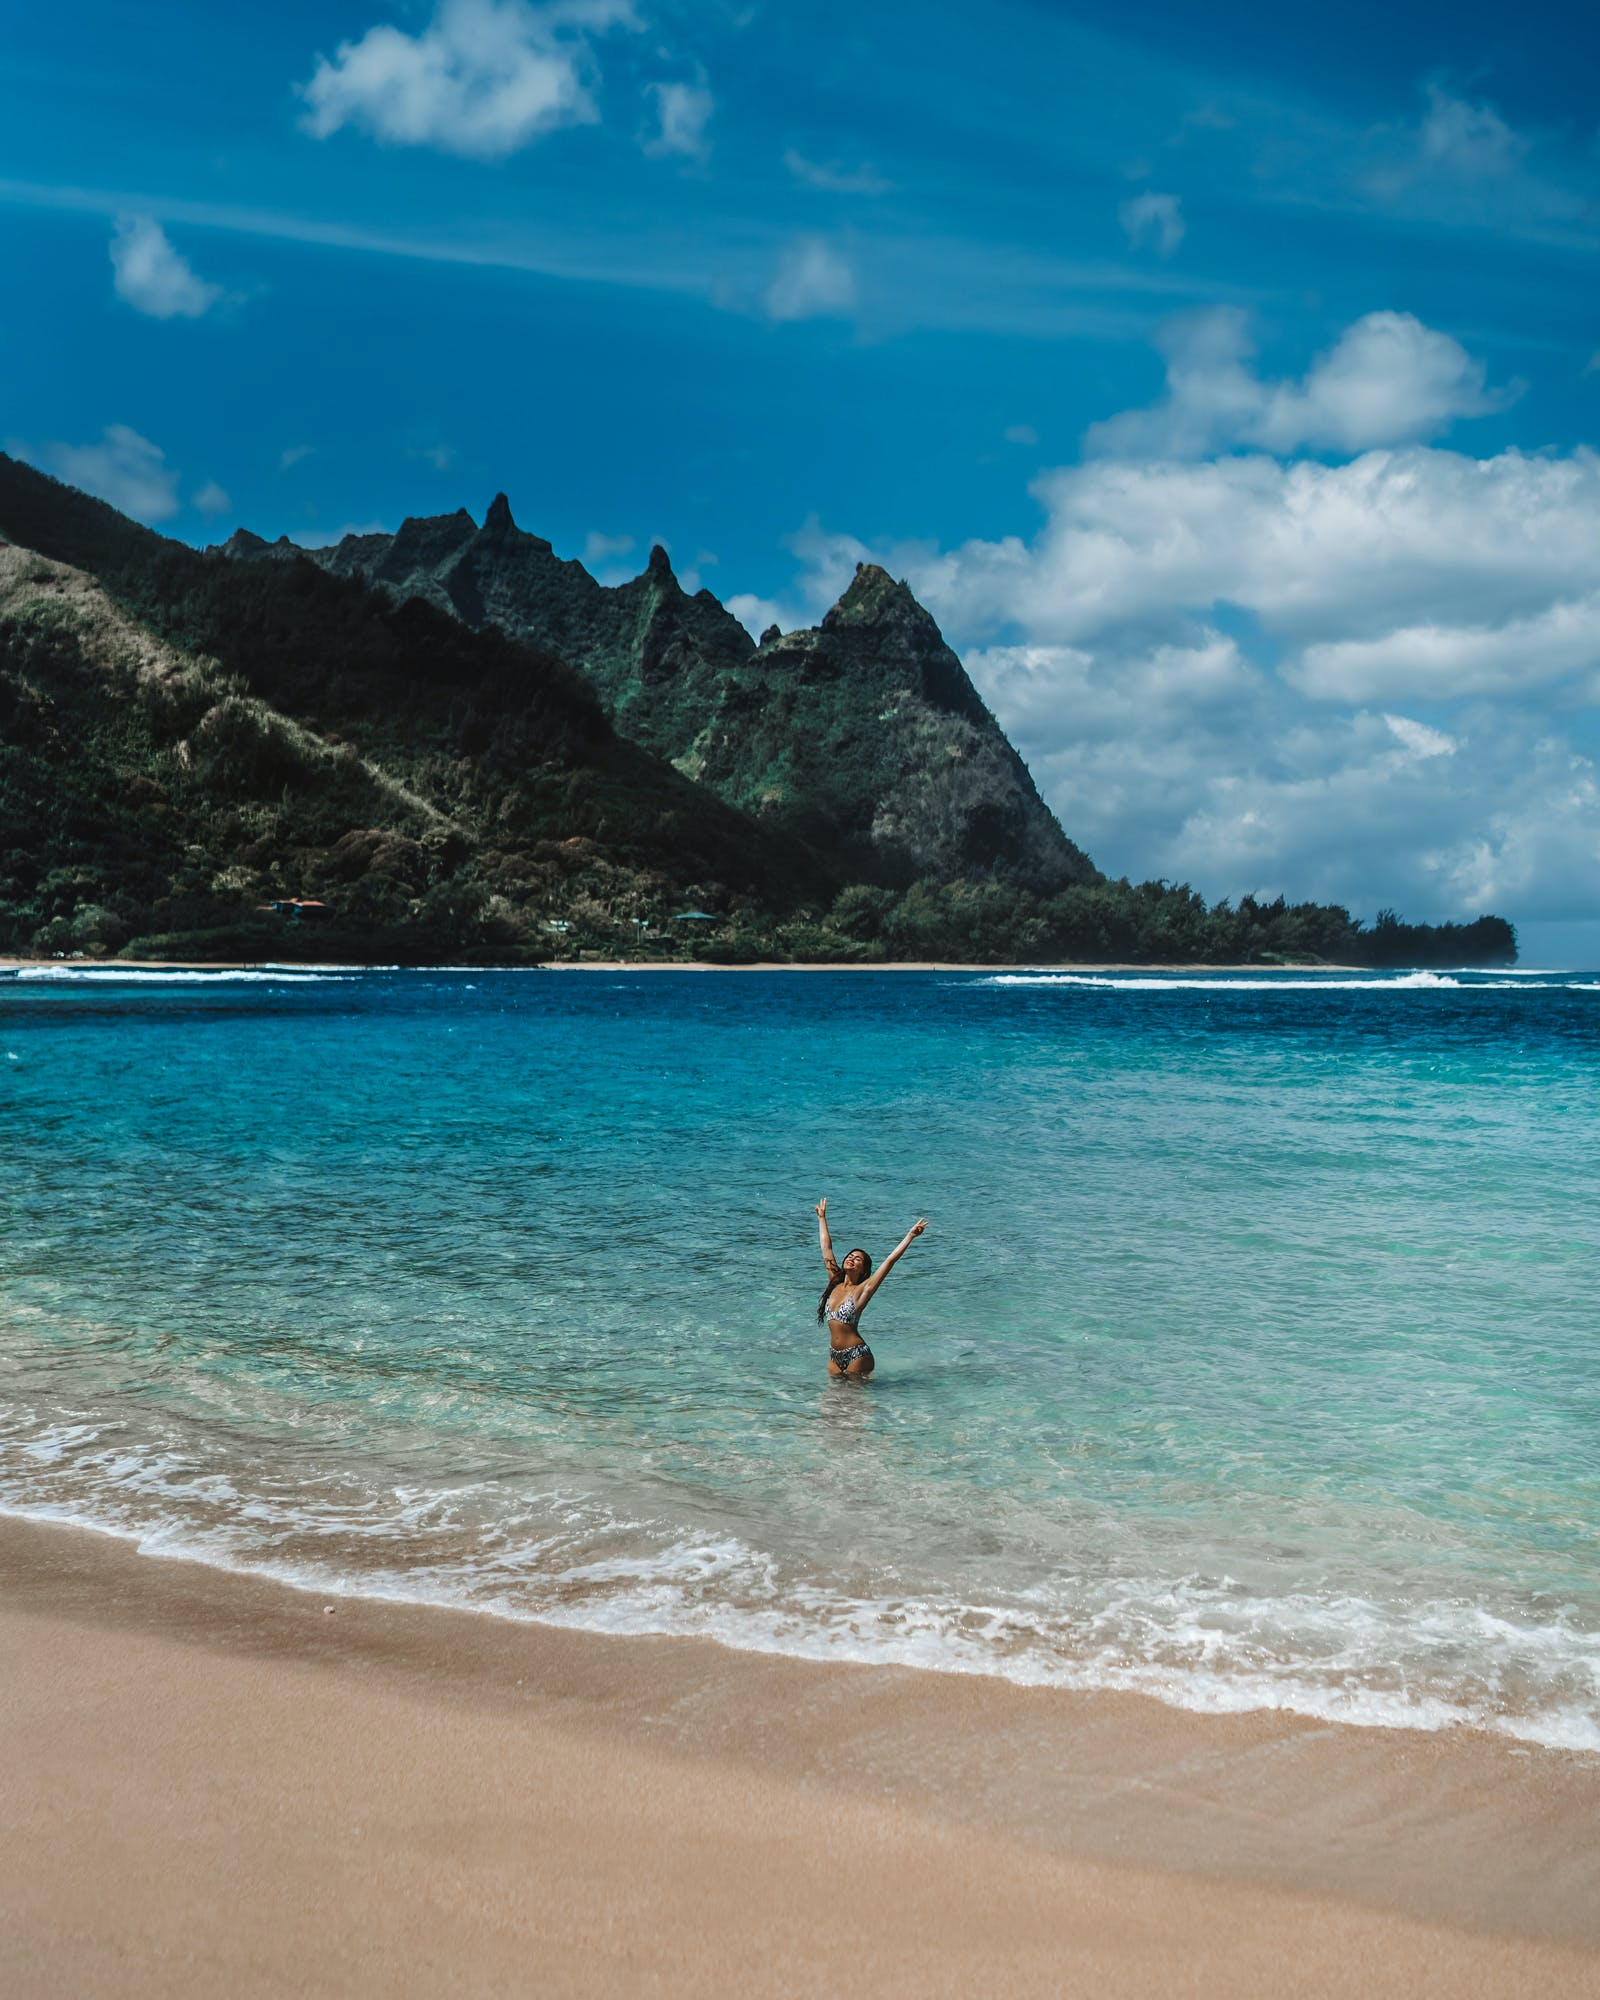 Photo Guide: The Top 19 Most Instagrammable Places in Kauai, Hawaii | Away Lands